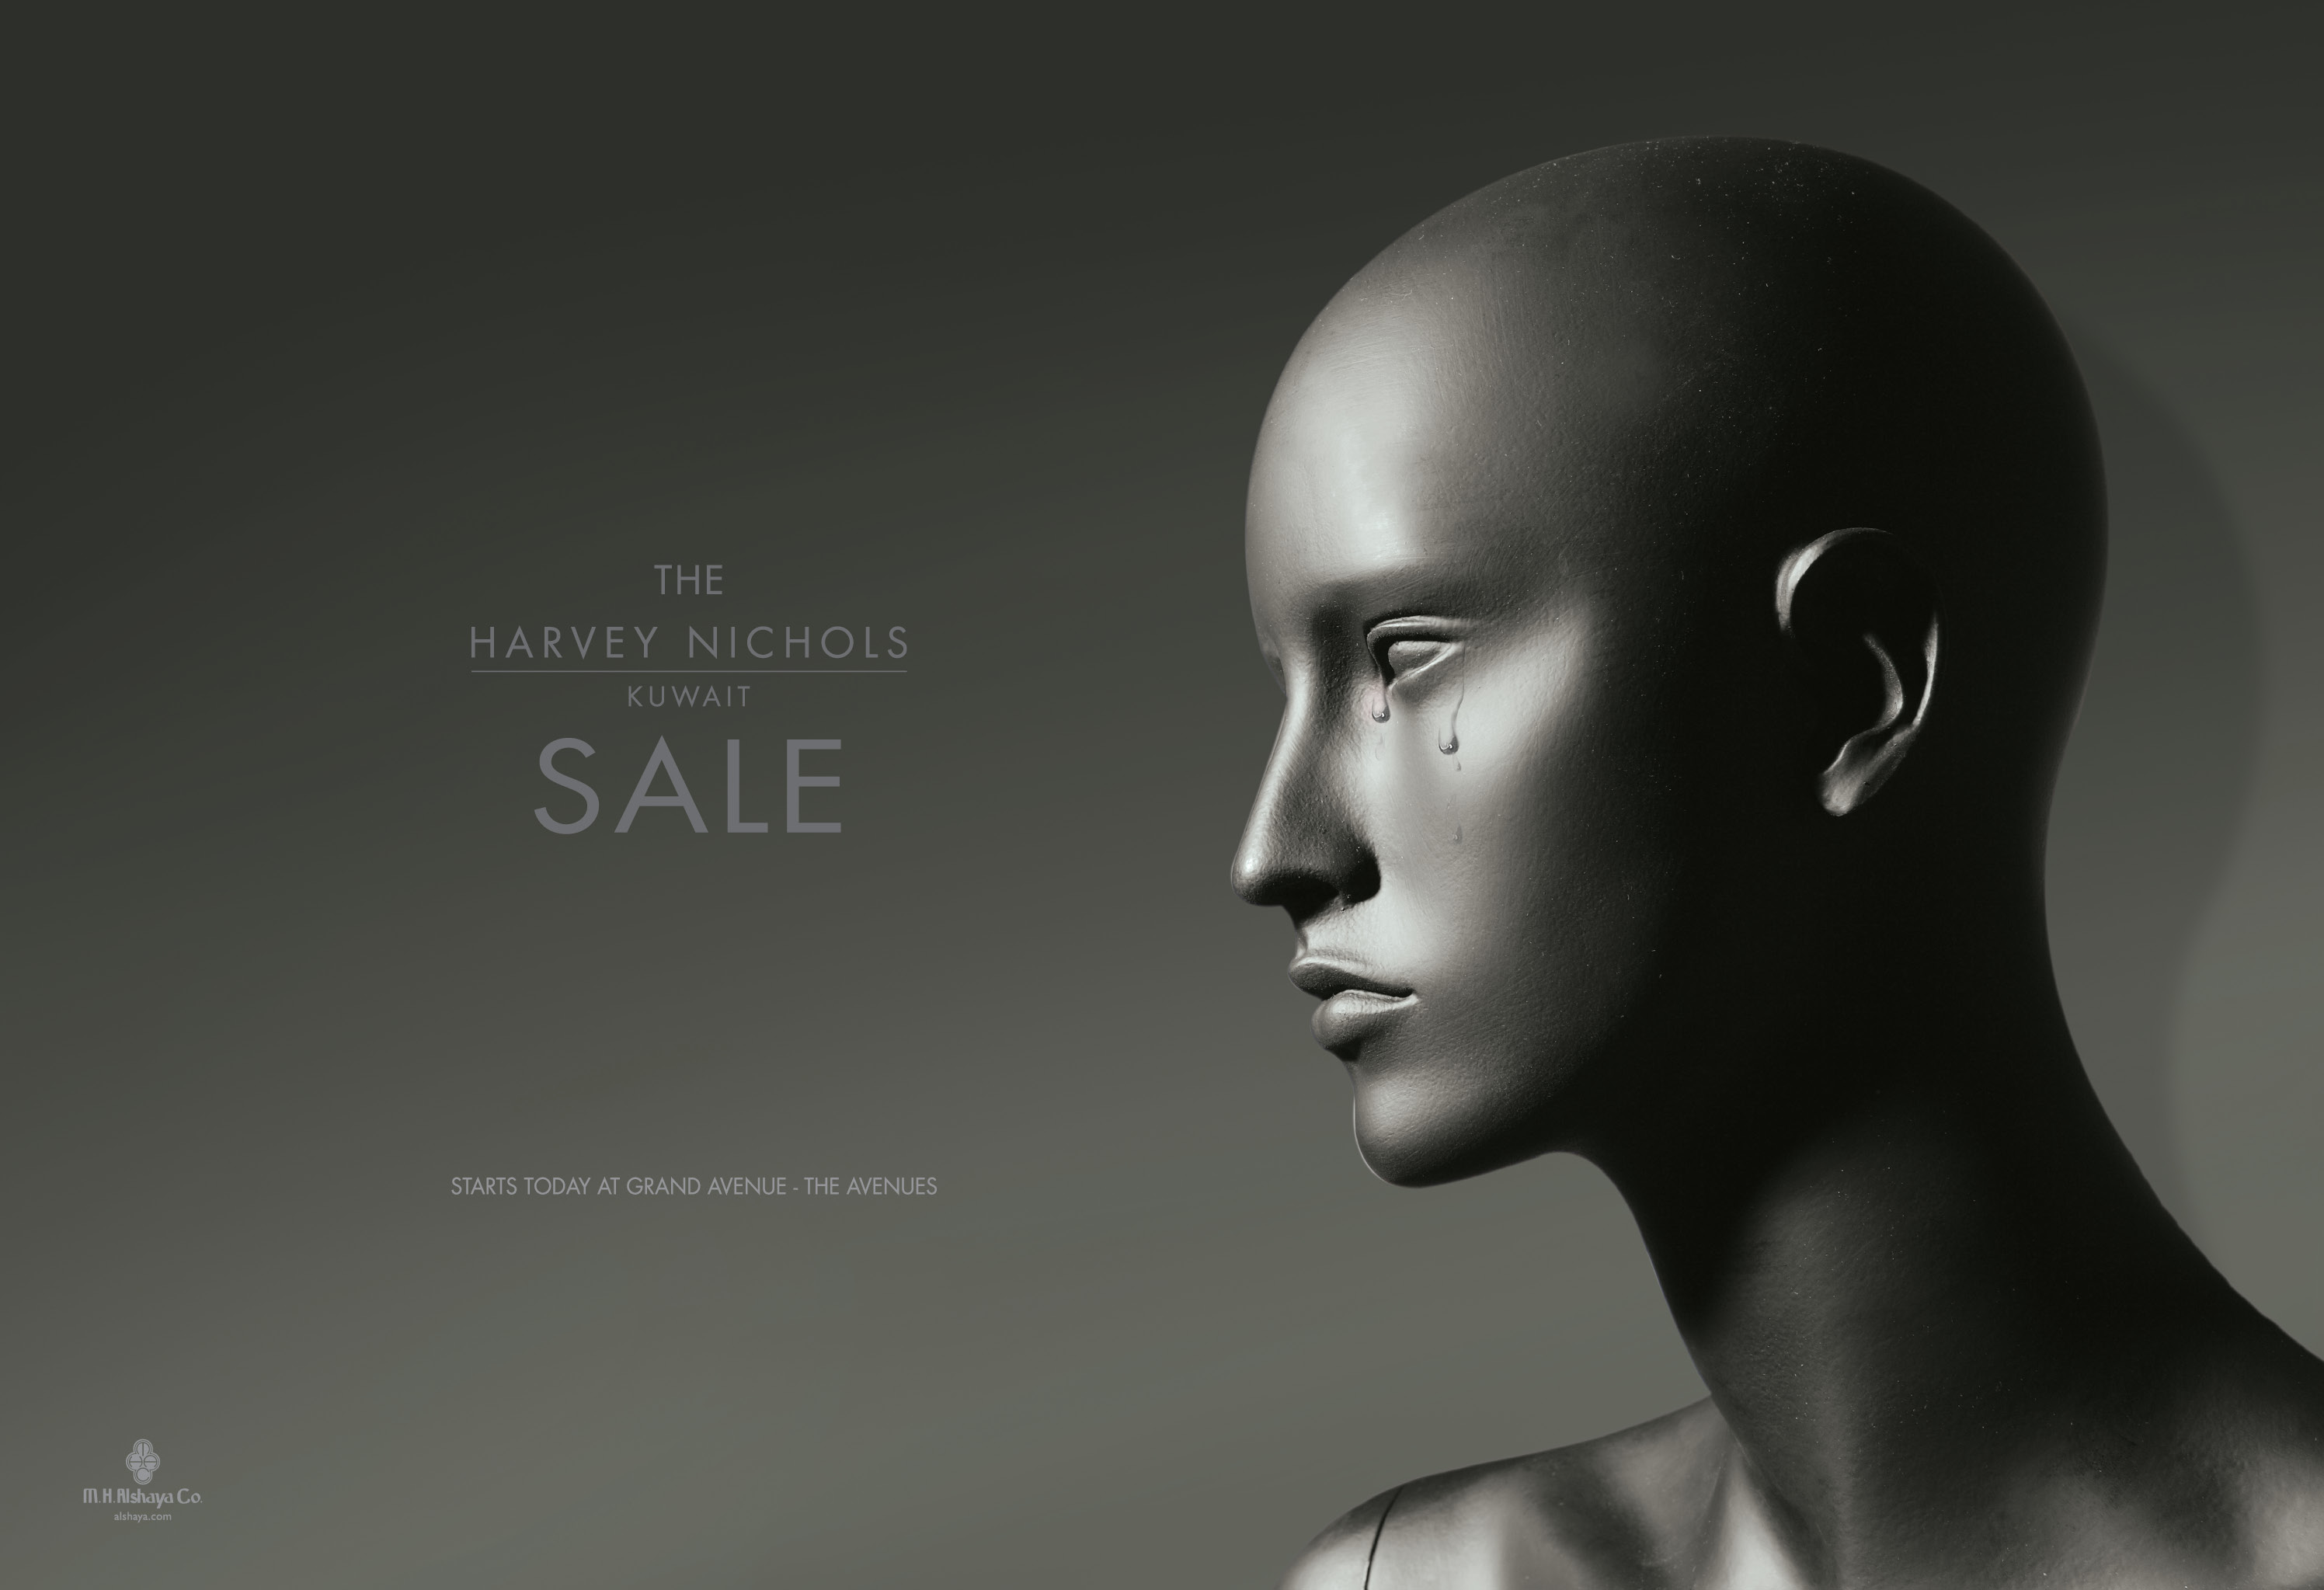 em es abdulla: Harvey Nichols - Sale: Crying mannequin